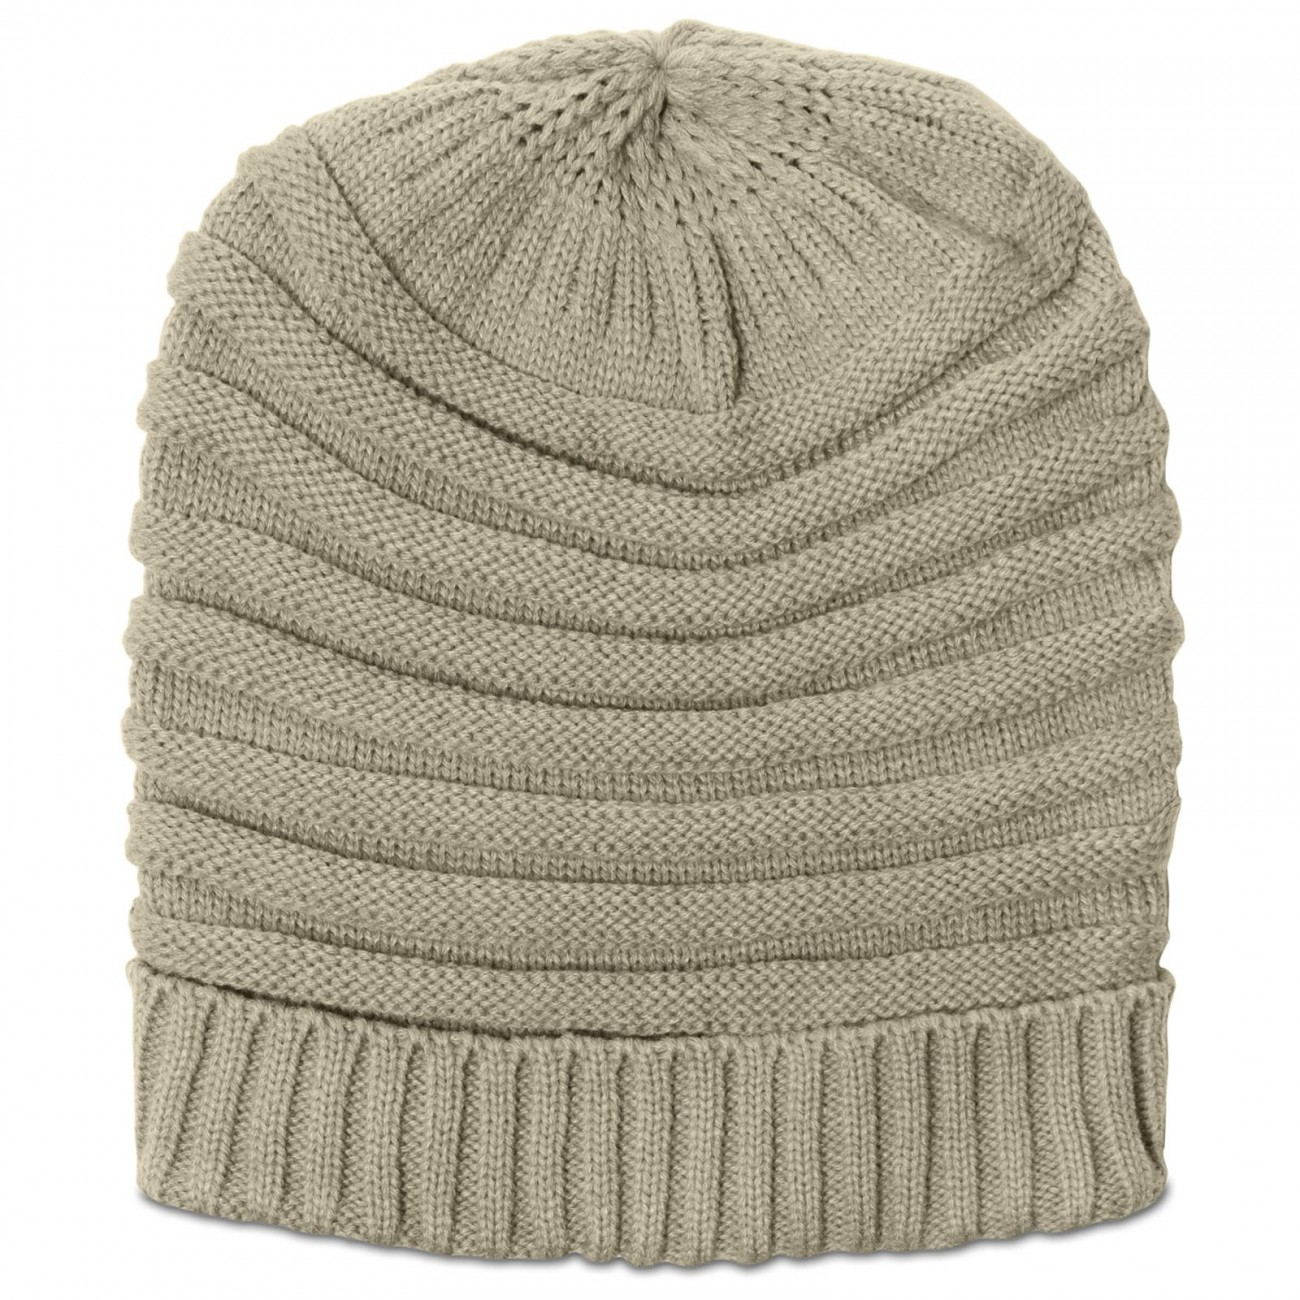 Knit Slouch Bag Pattern Free : CASPAR Womens Winter Hat Knitted Slouch Beanie Ribs ...